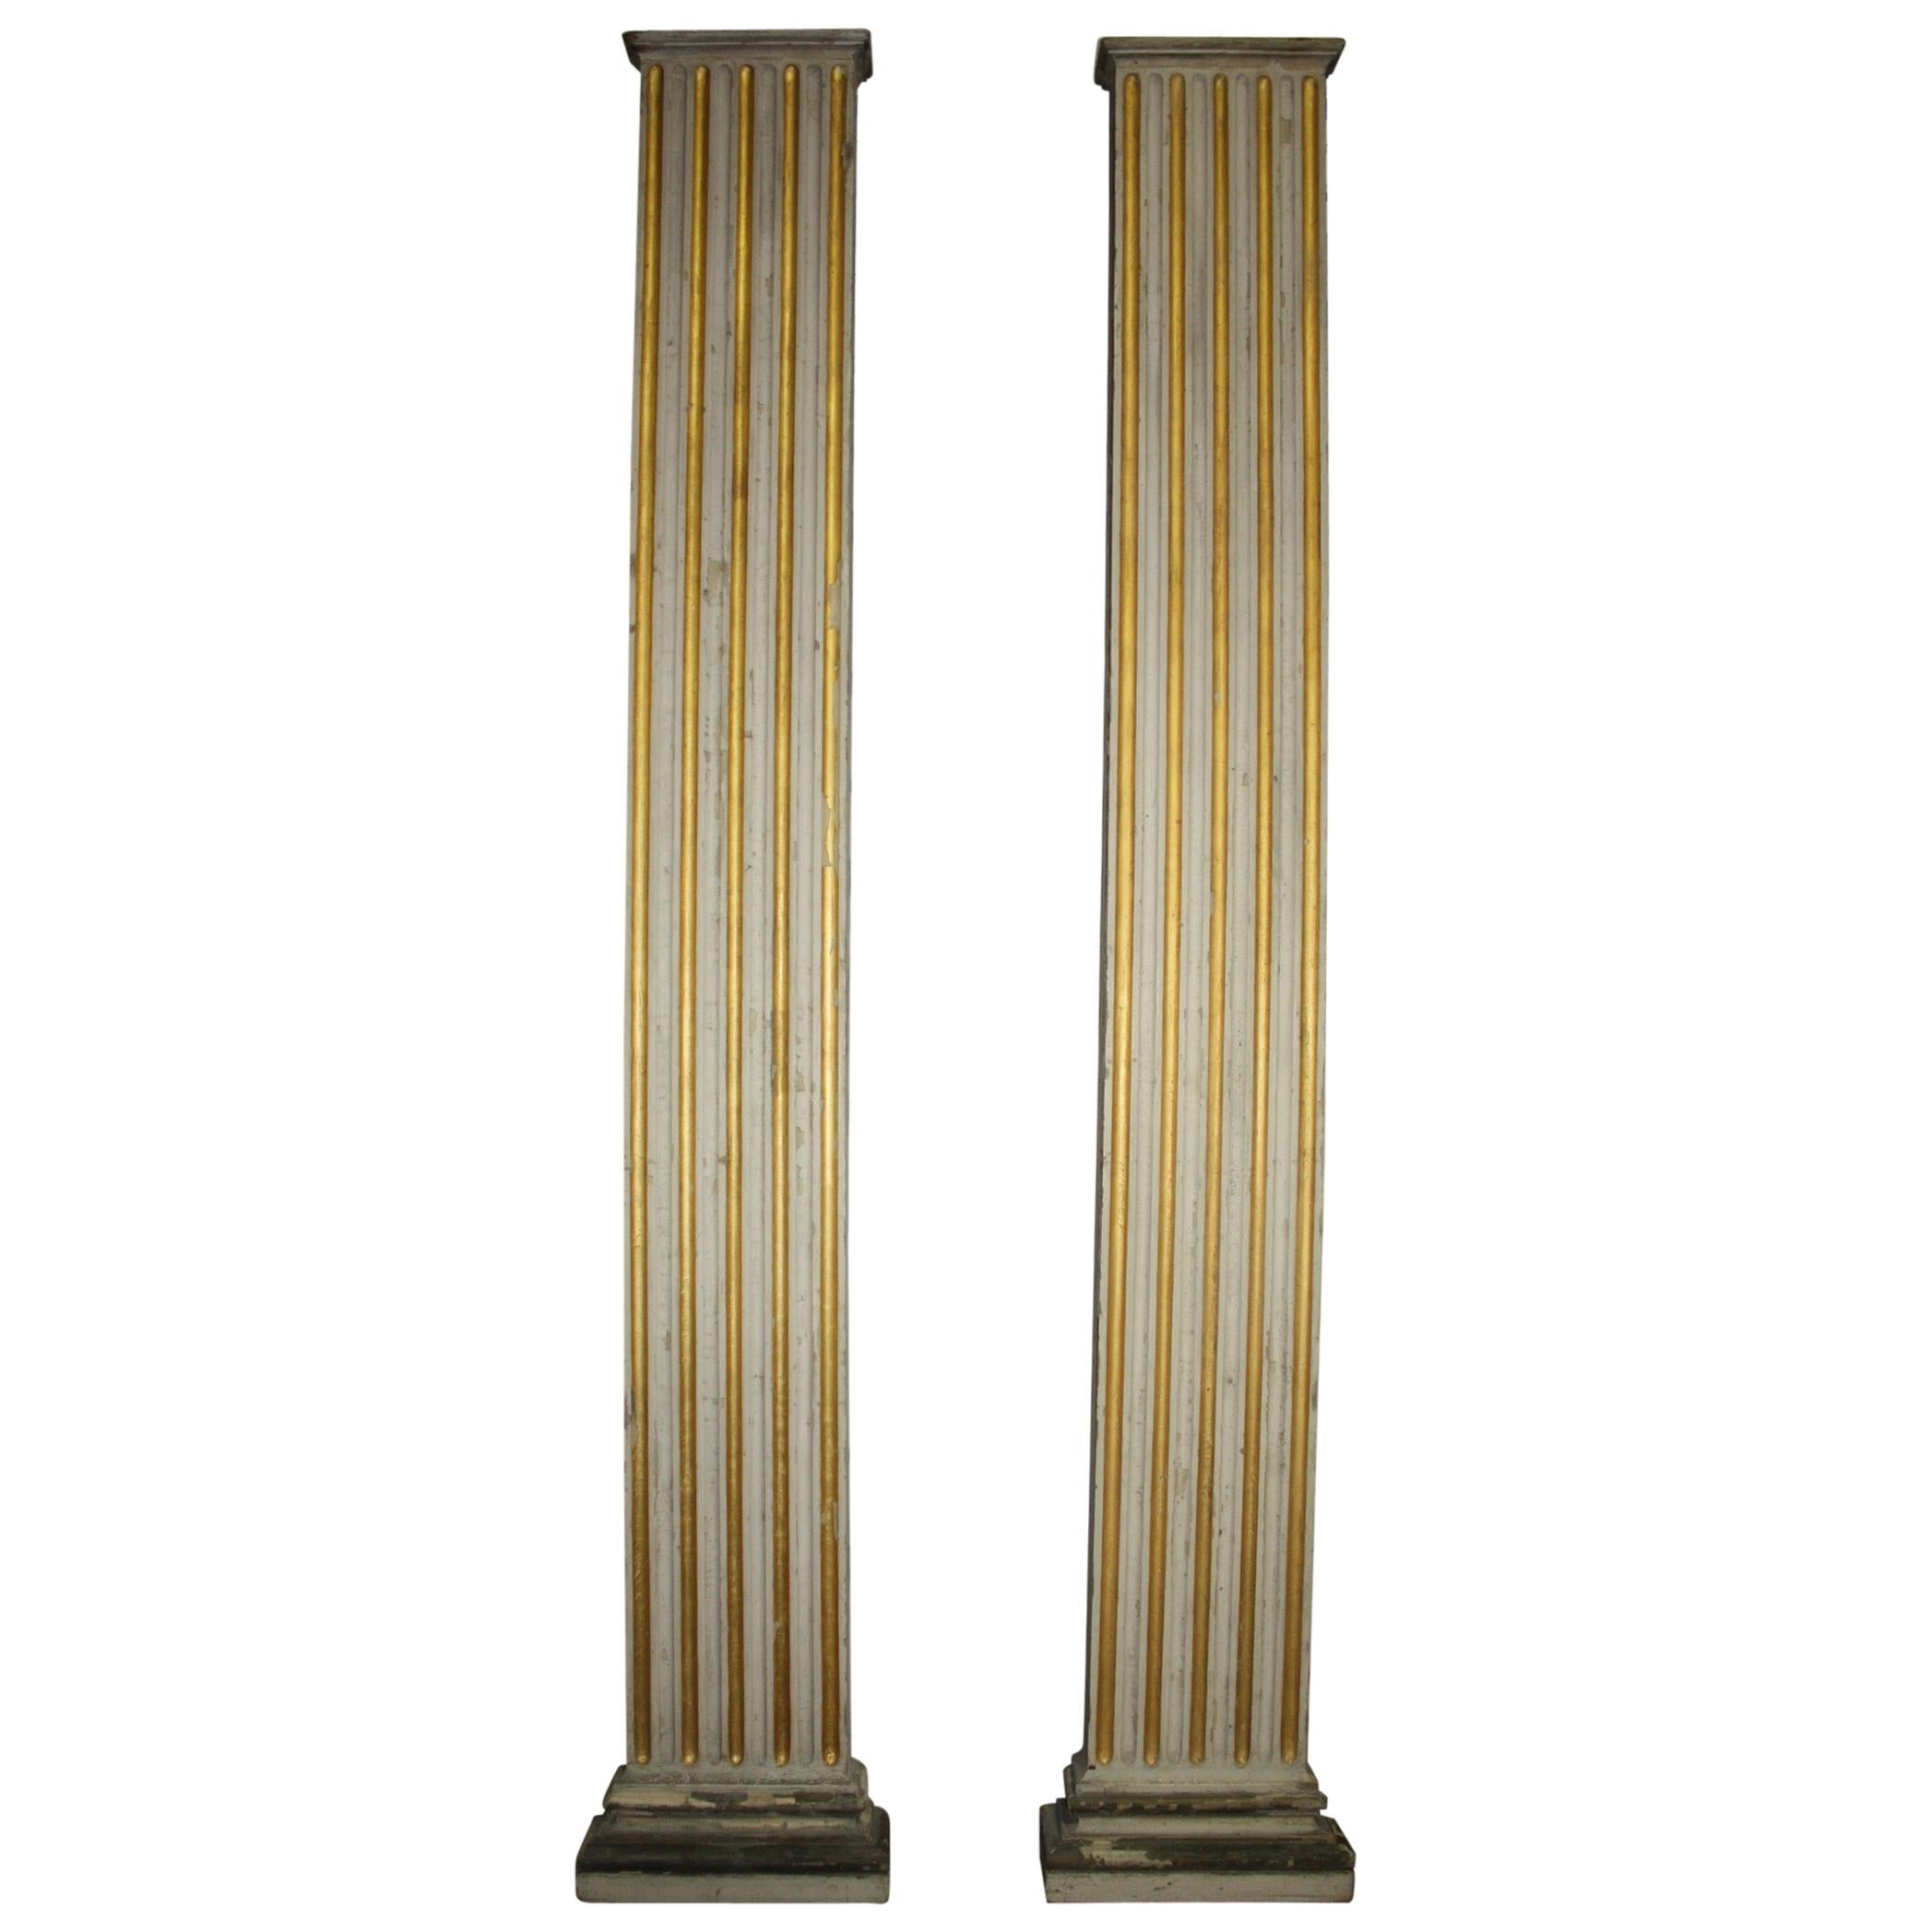 Magnificent Pair of 19th Century French Columns